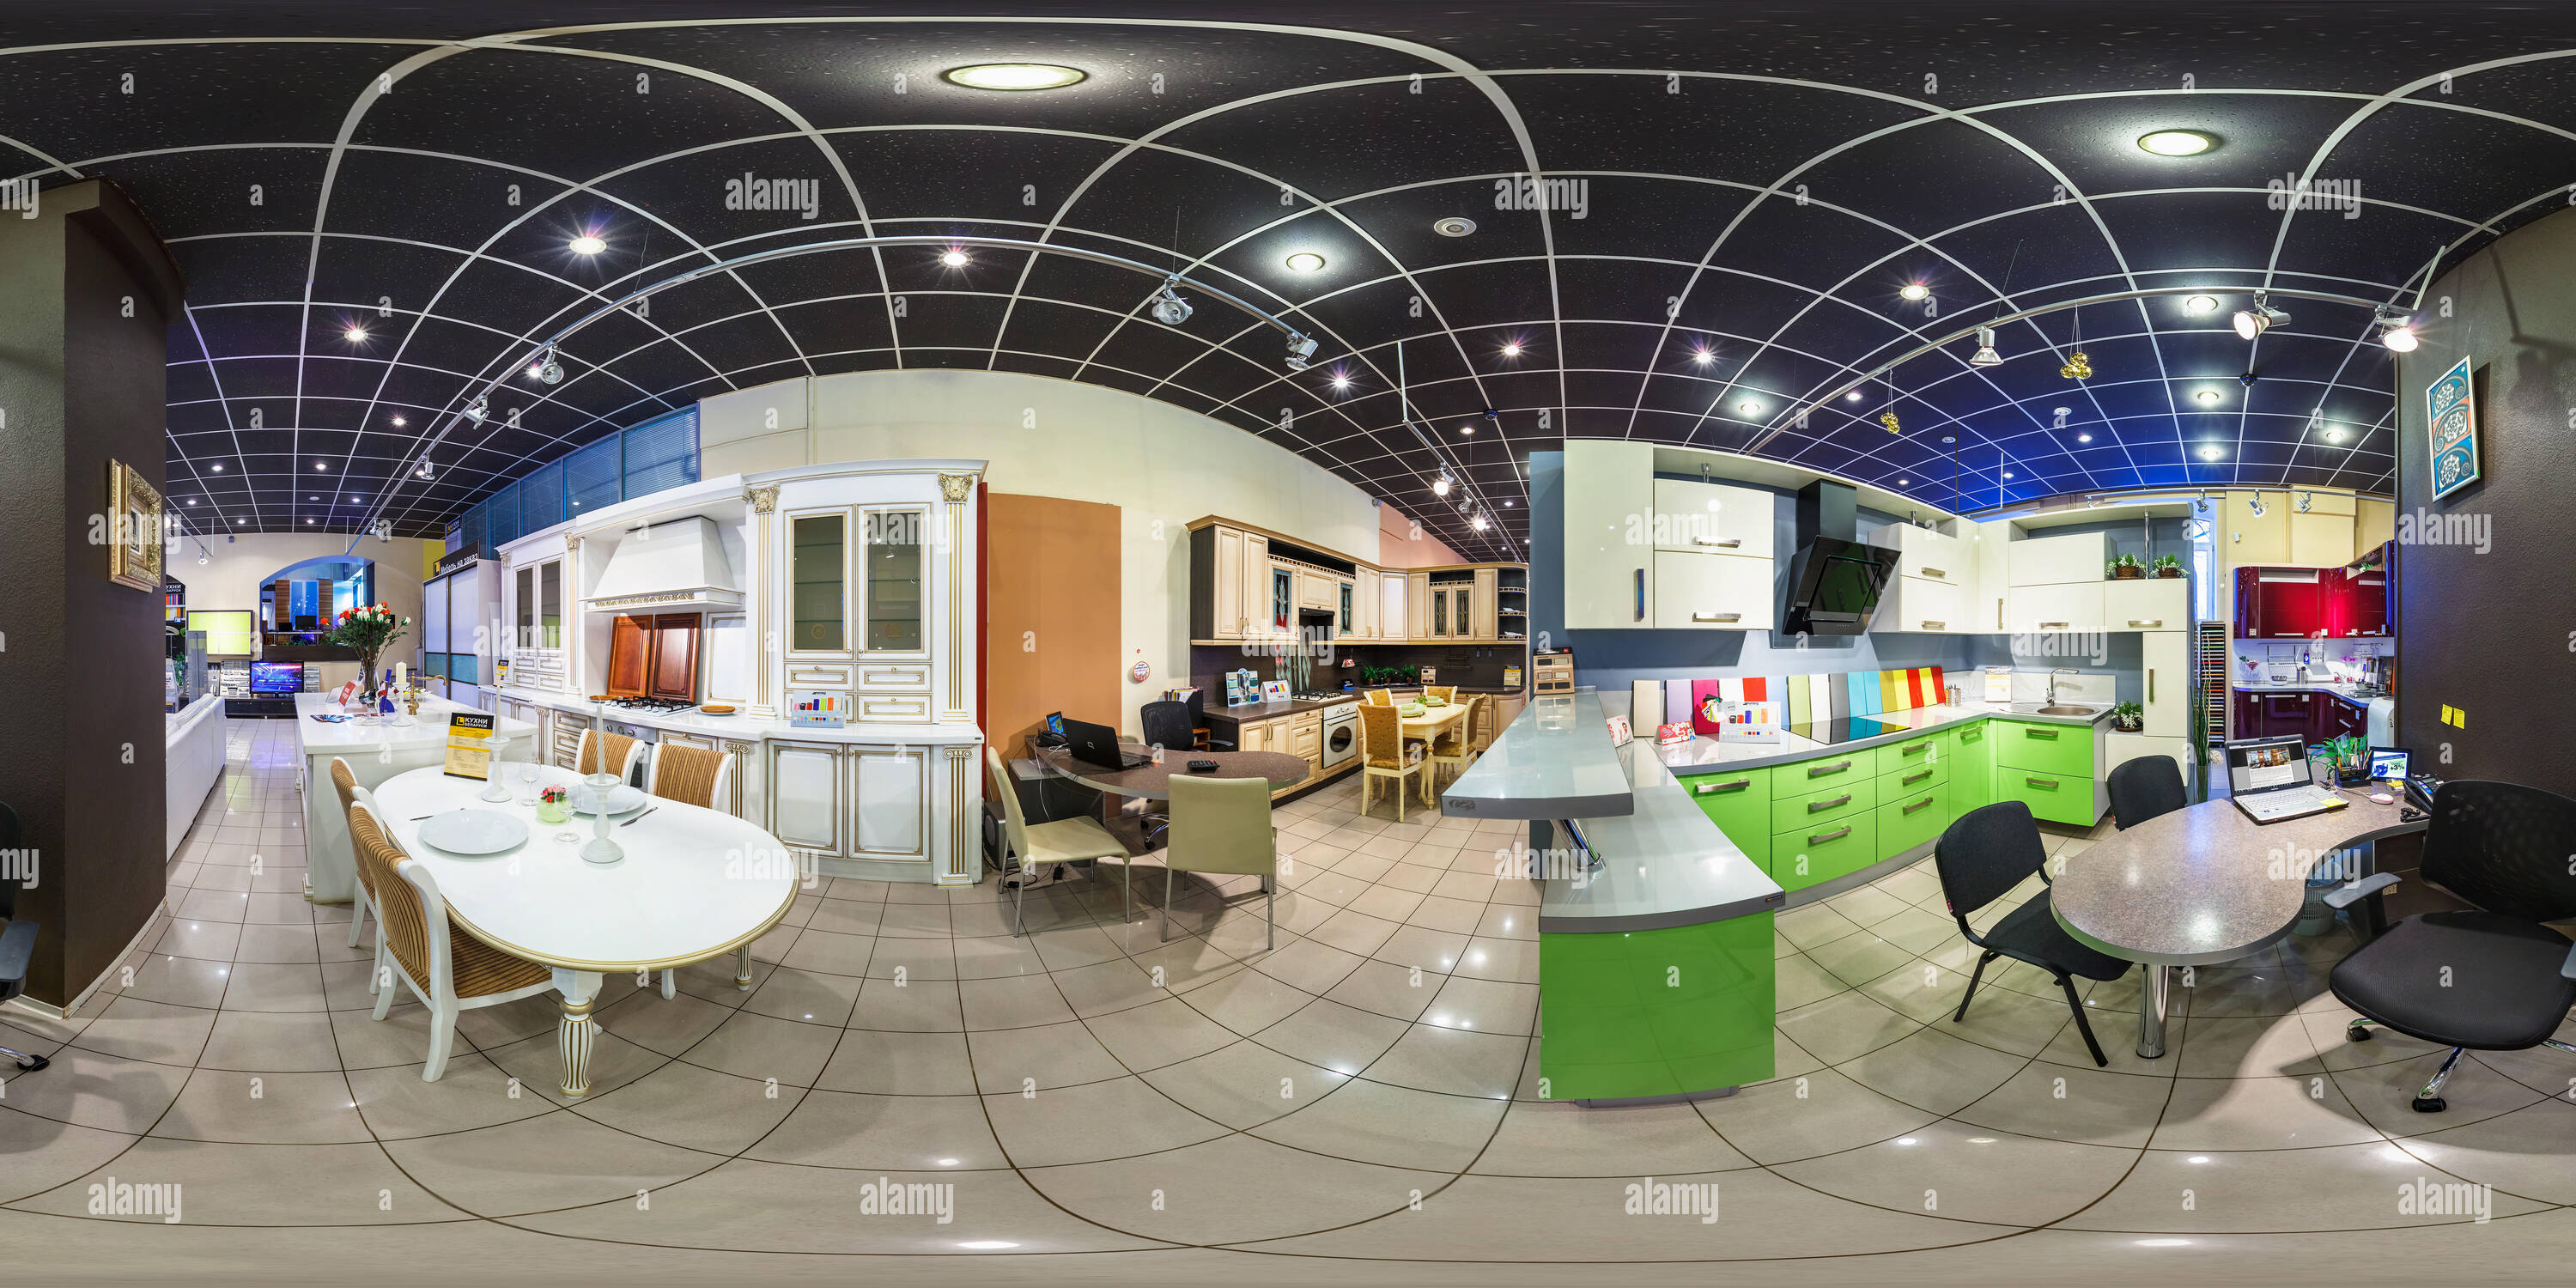 moscow russia march 4 2014 full 360 degree panorama in equirectangular spherical